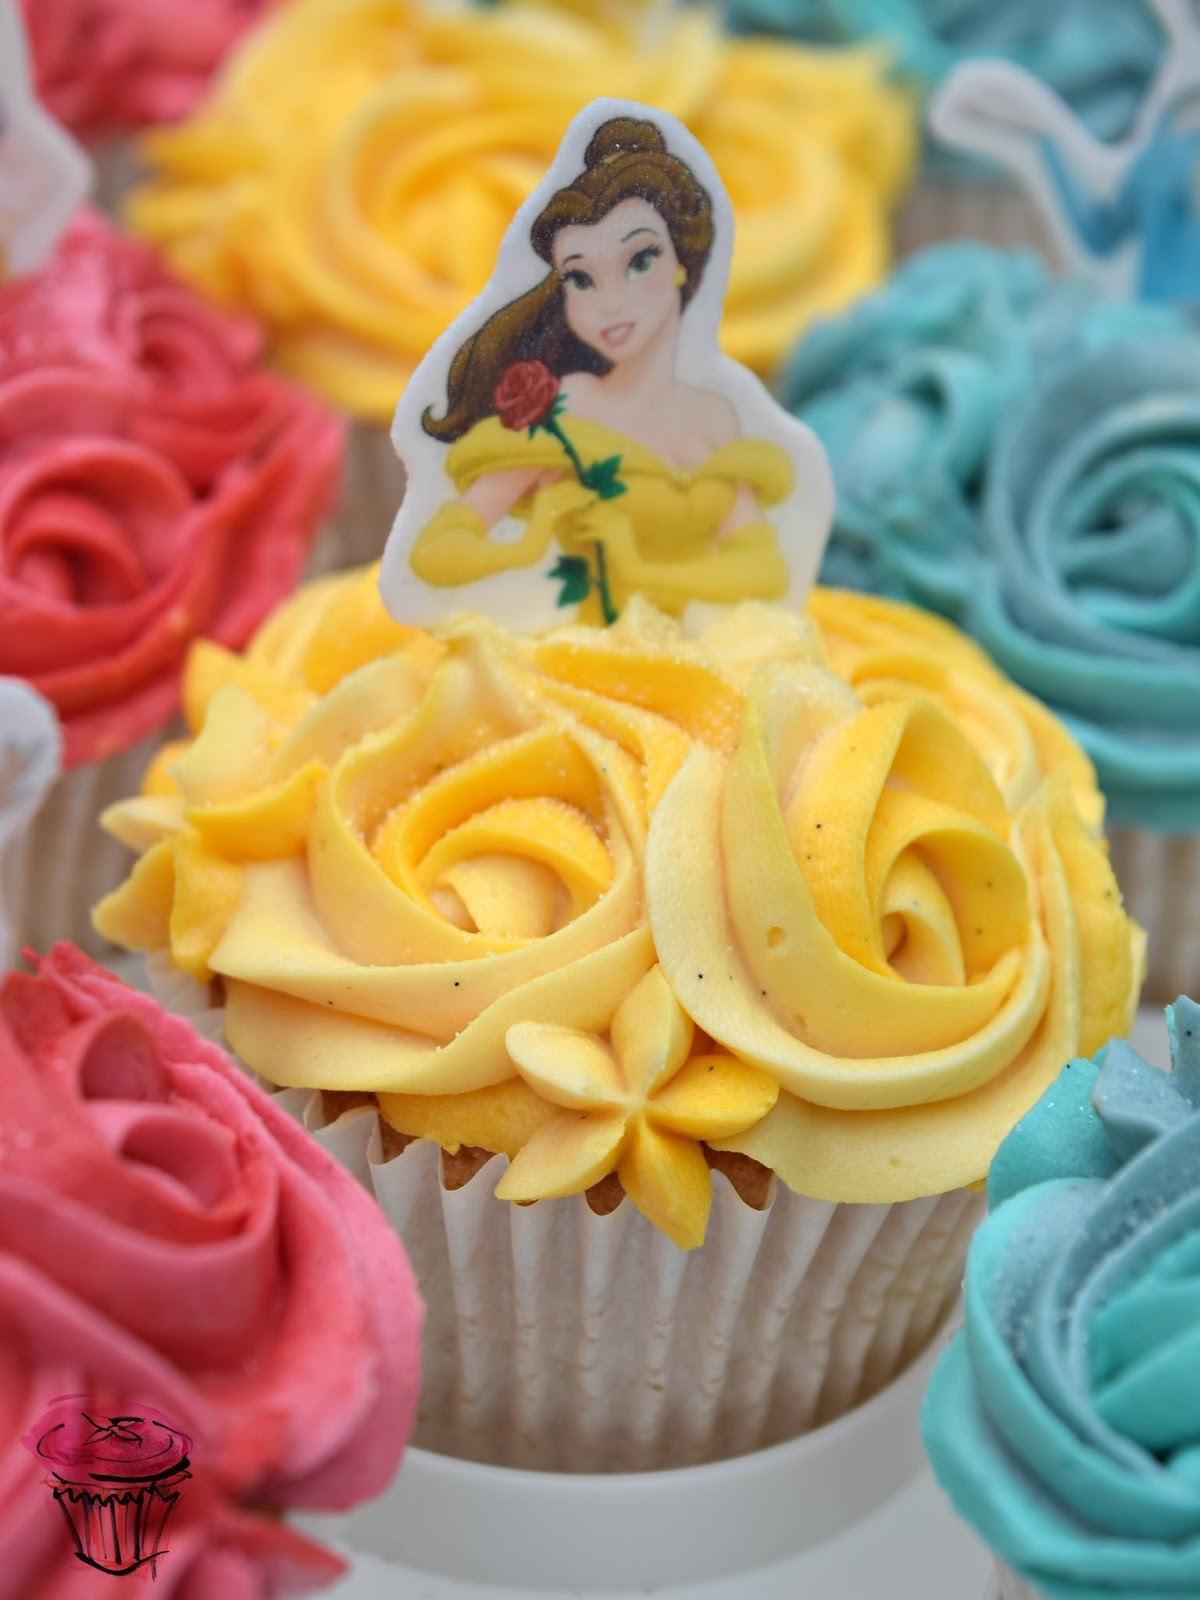 Belle Beauty and the Beast Disney Cupcake with Yellow Dress